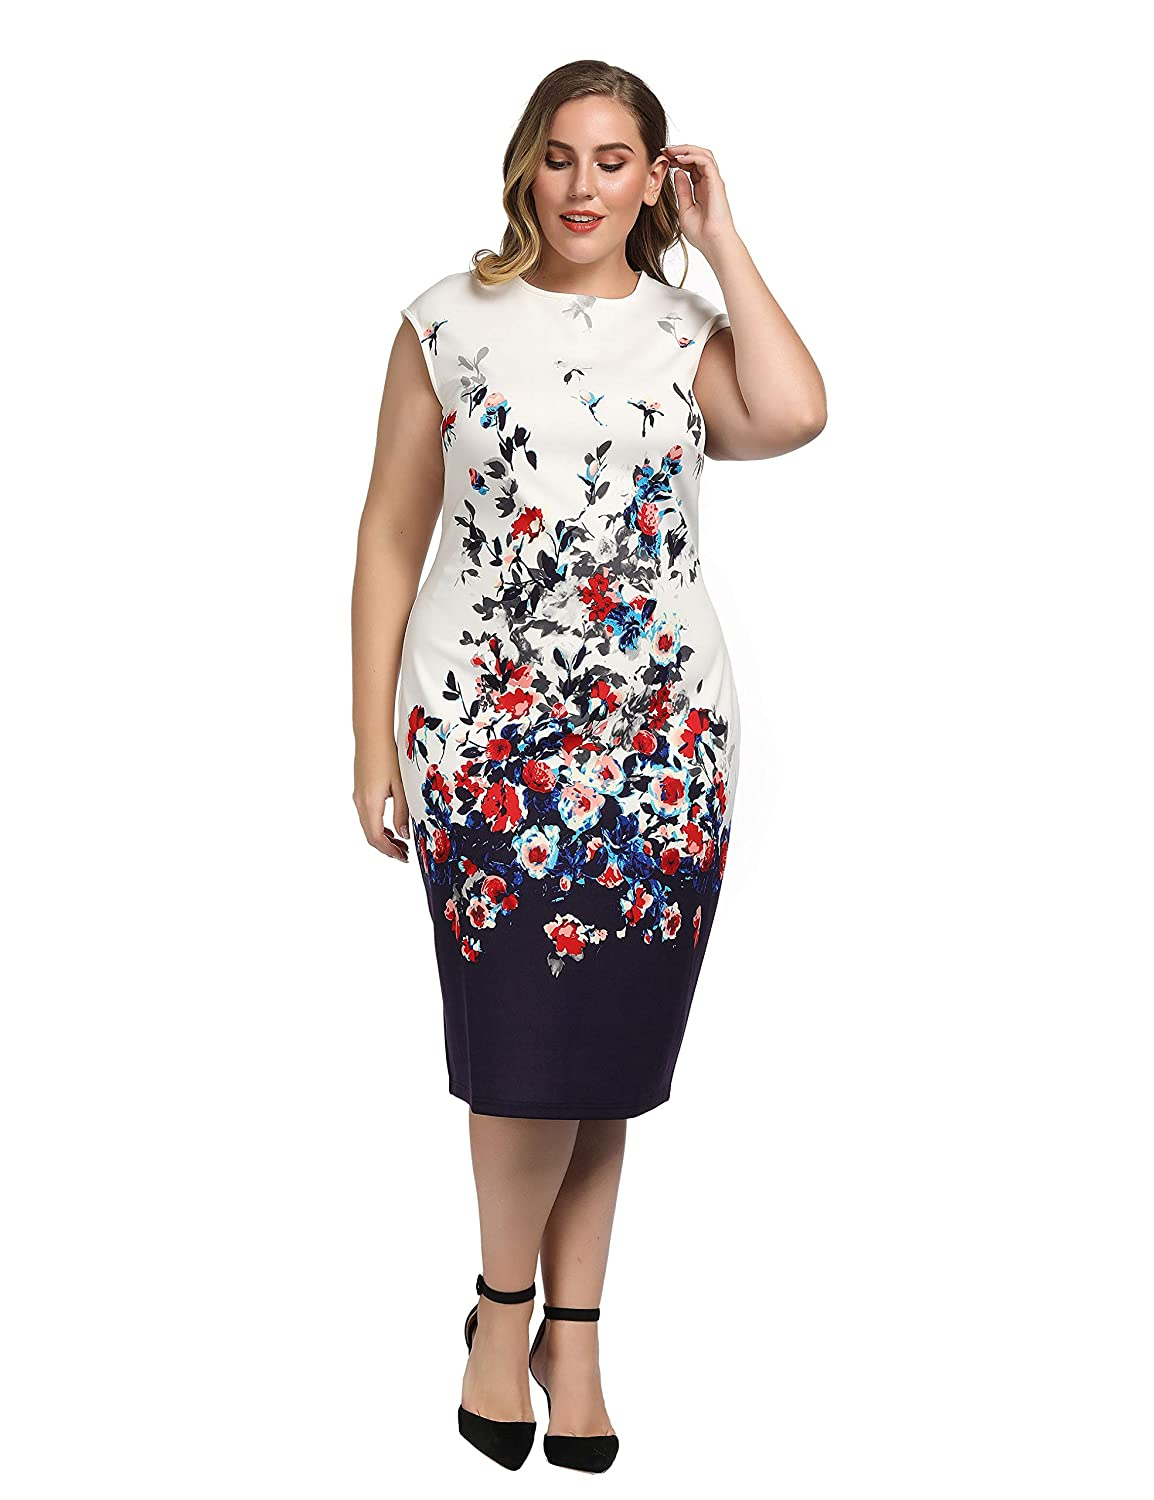 Chicwe Women\u0027s Plus Size Cap Sleeves Stretch Floral Printed Shift Dress ,  Knee Length Casual Party Cocktail Dress